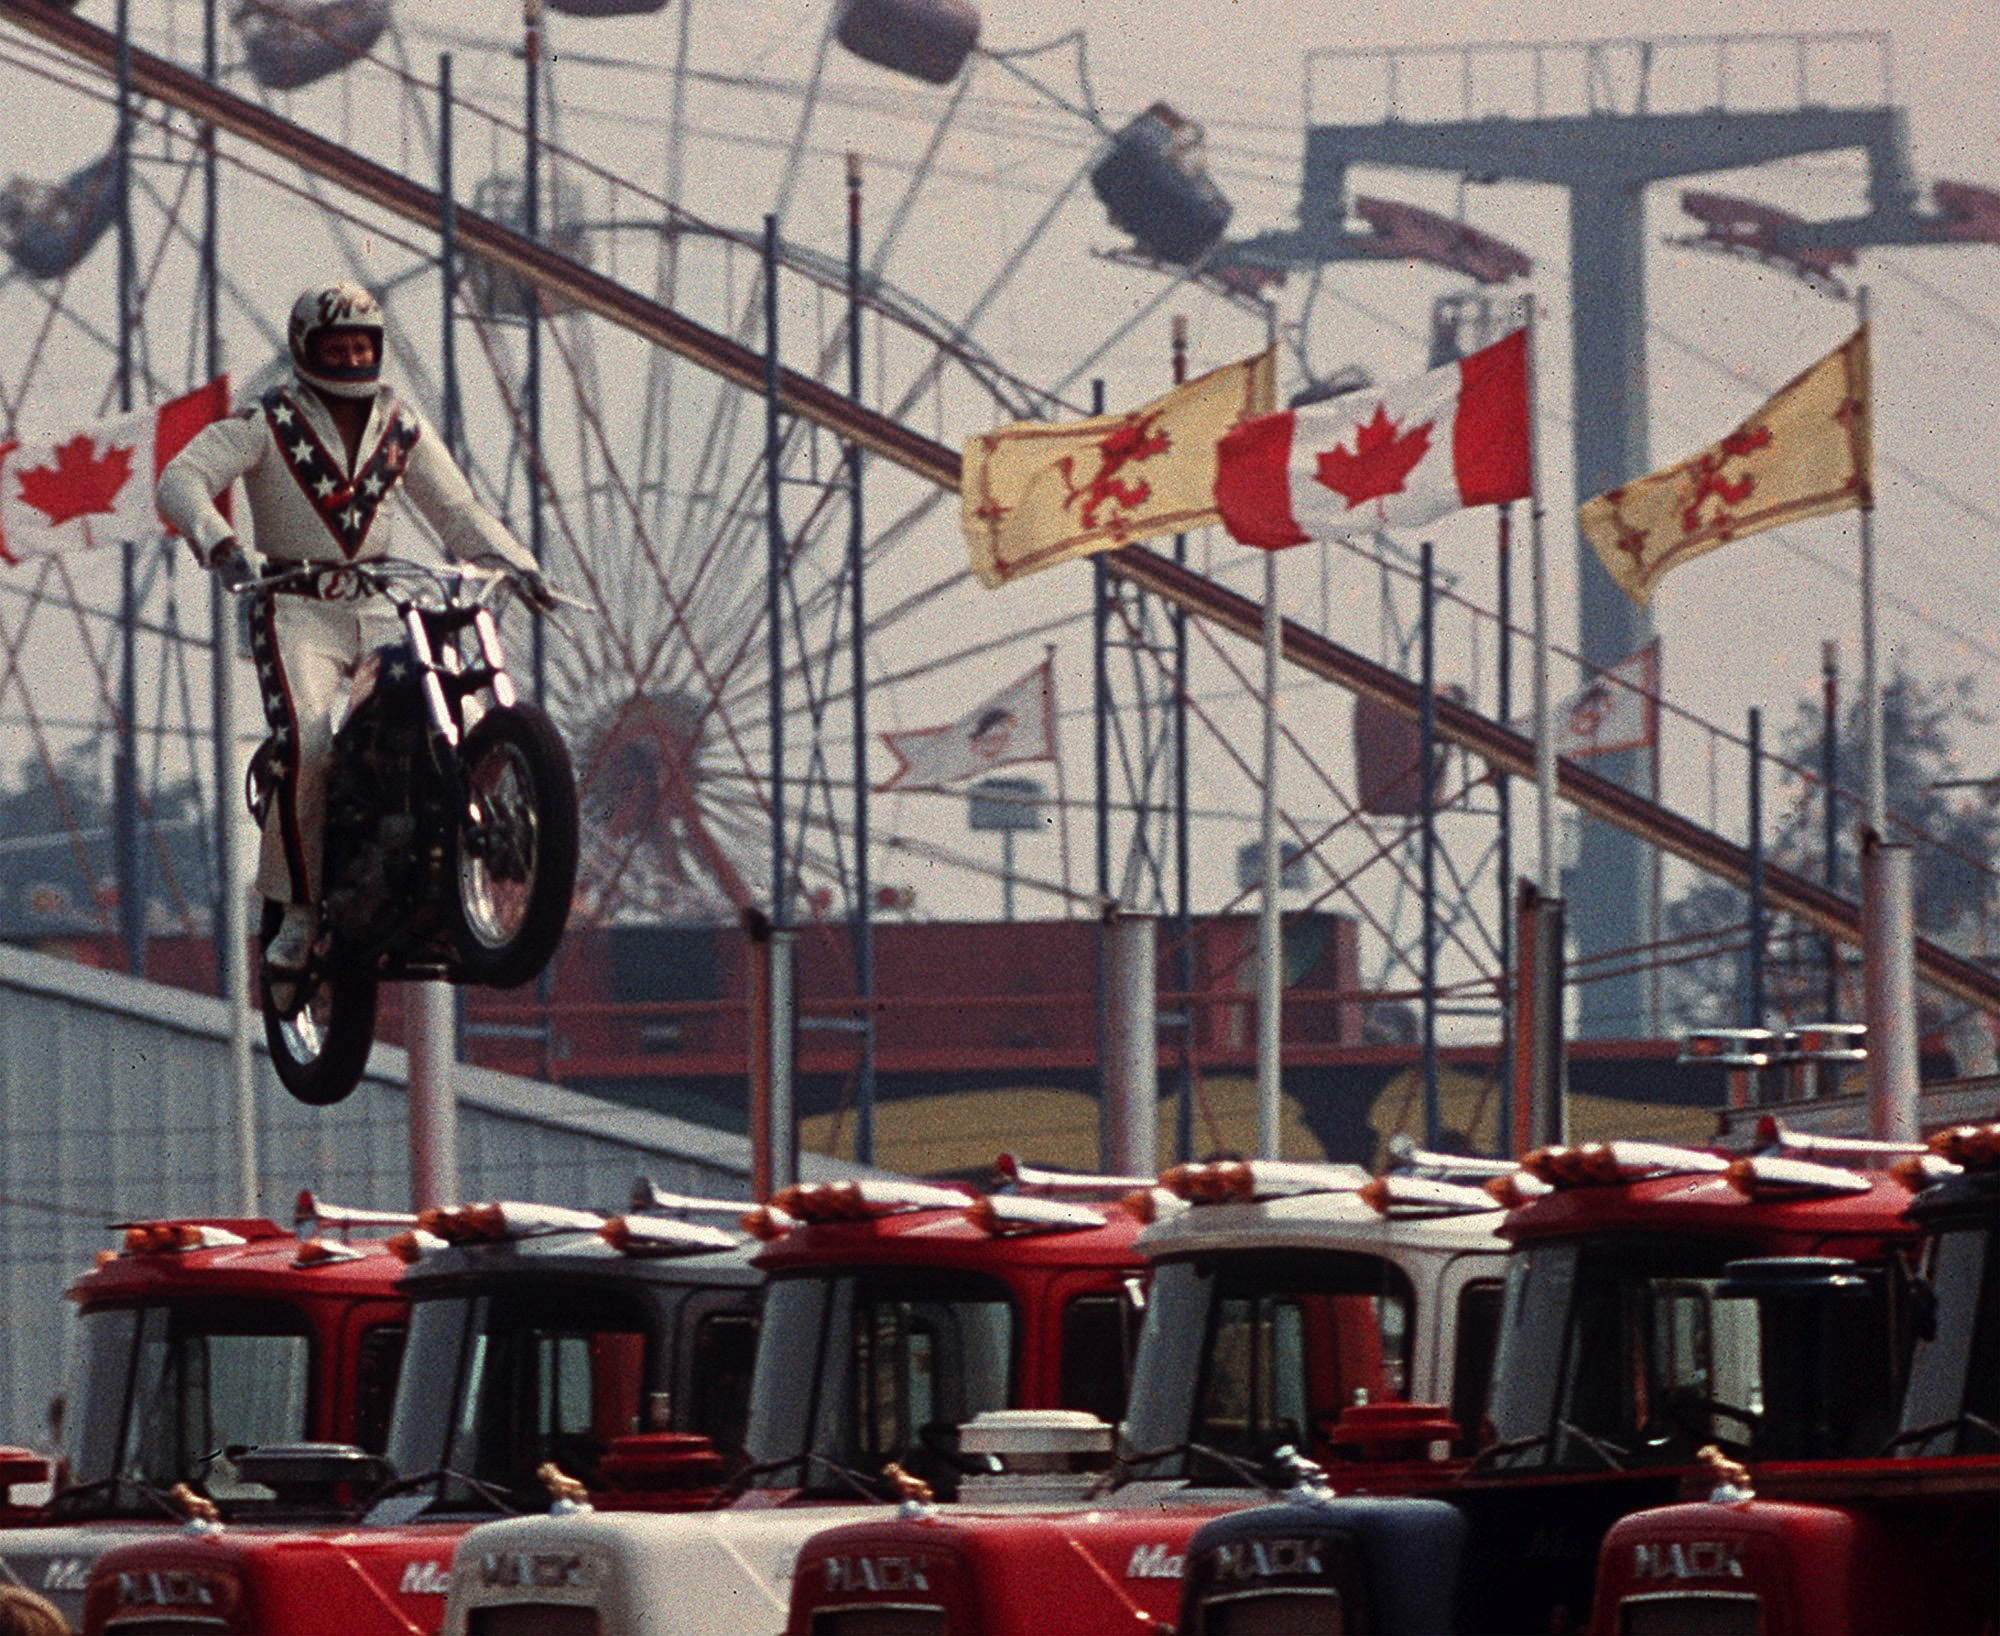 2000x1636 - Evel Knievel Wallpapers 12